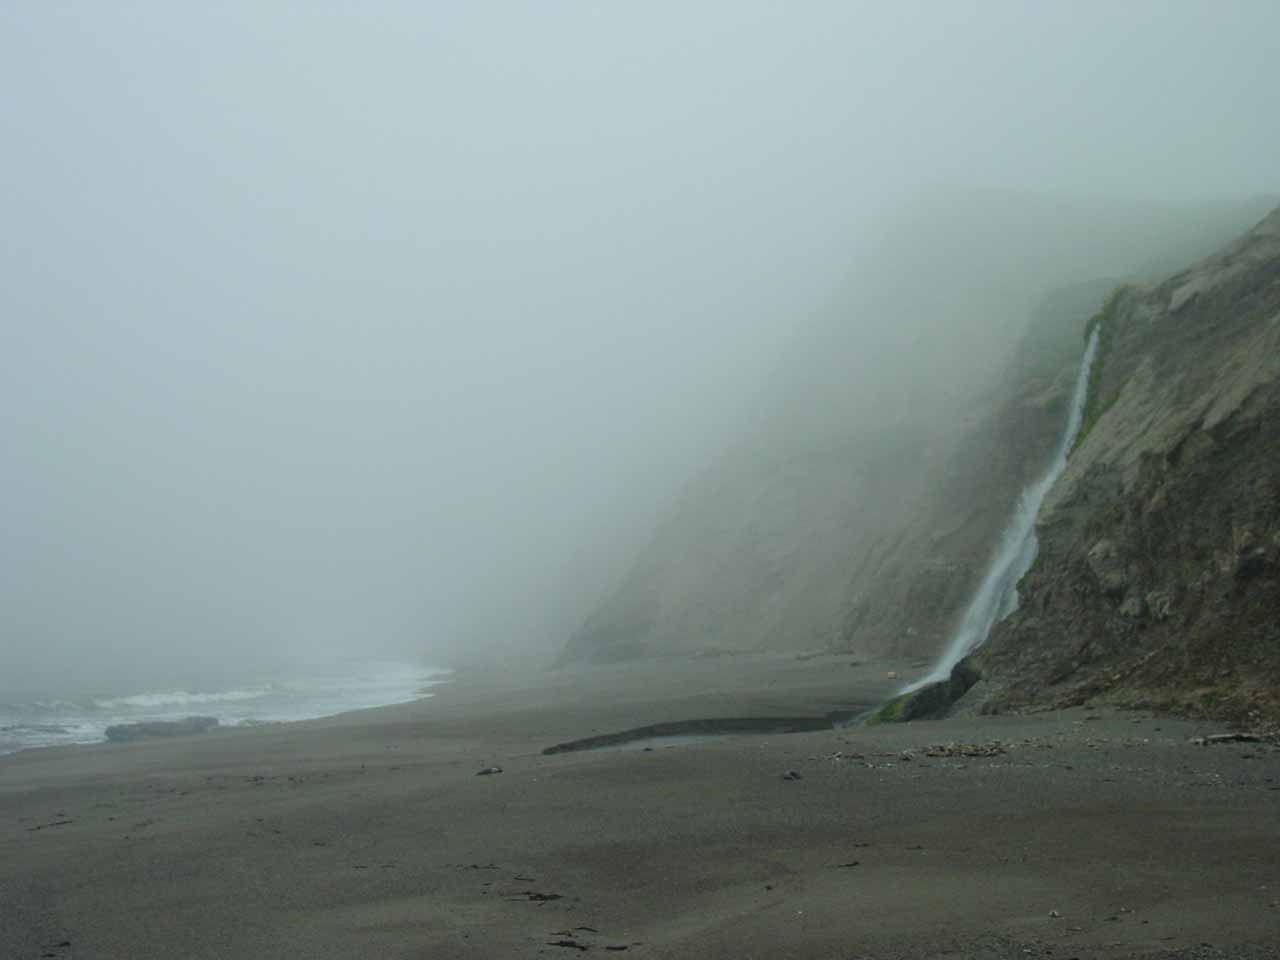 Looking back at the interplay of fog and the beach